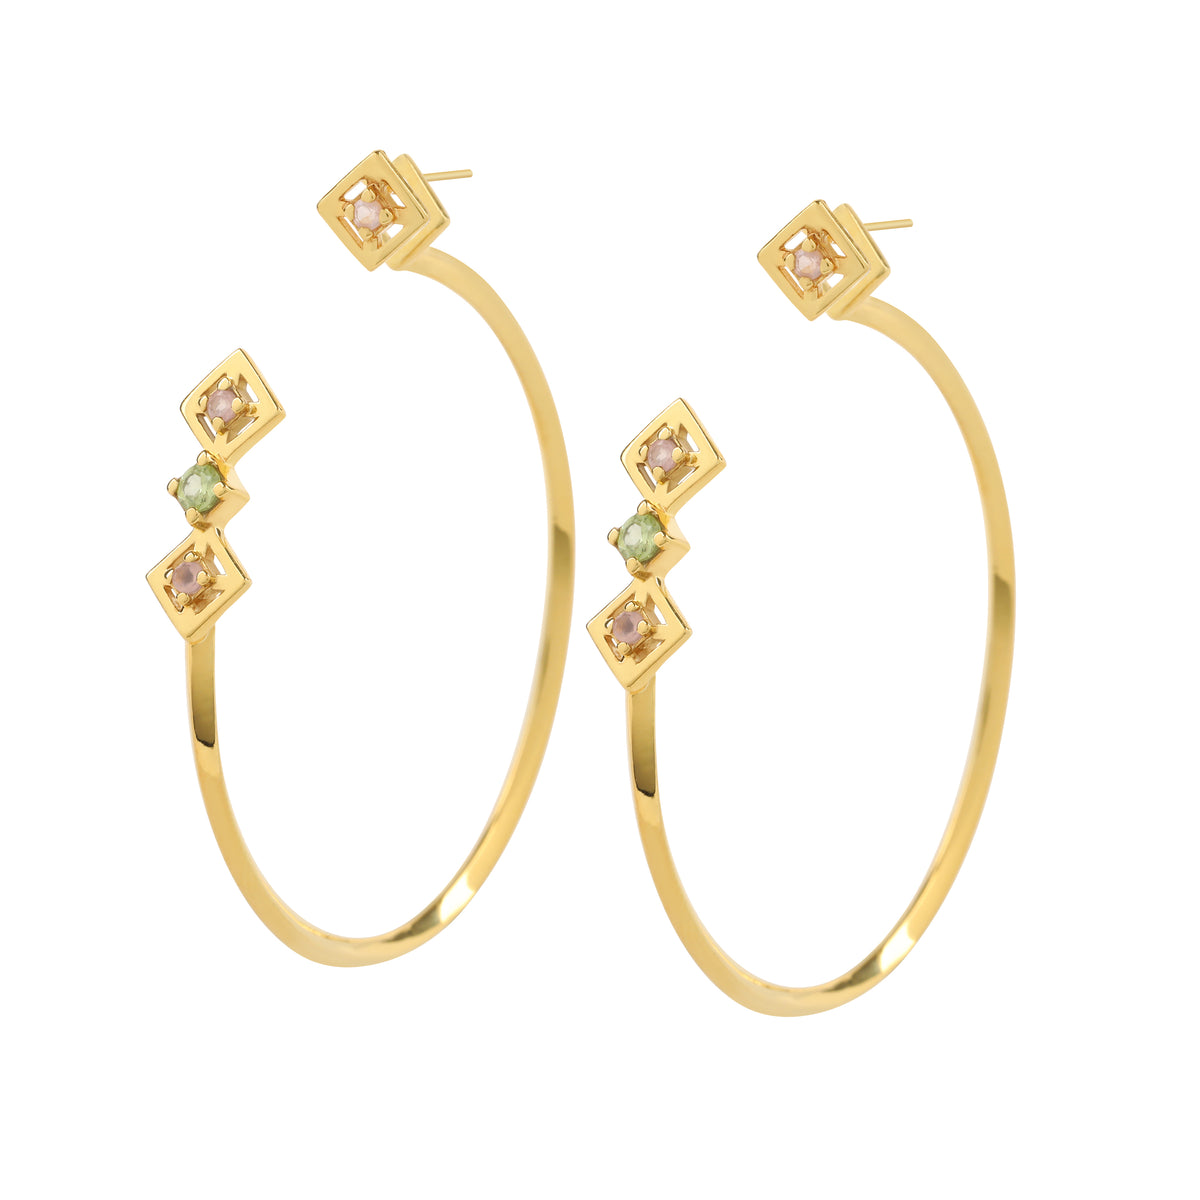 Reconceptions Two-Way Hoops - Gold - Yellow